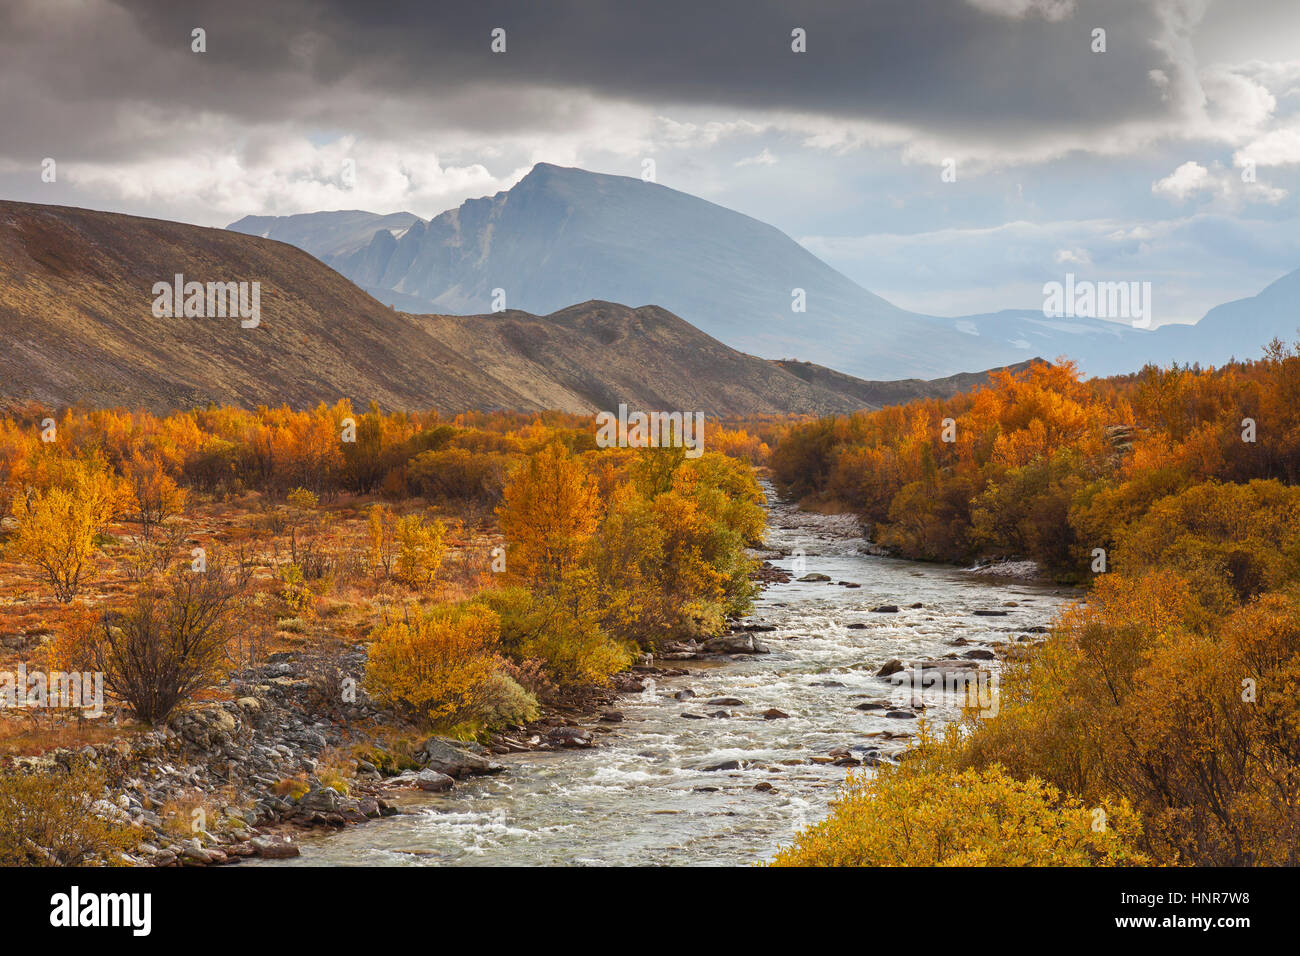 River Atna at Dørålseter / Doralseter in the Rondane National Park in autumn, Dovre, Norway, Scandinavia - Stock Image